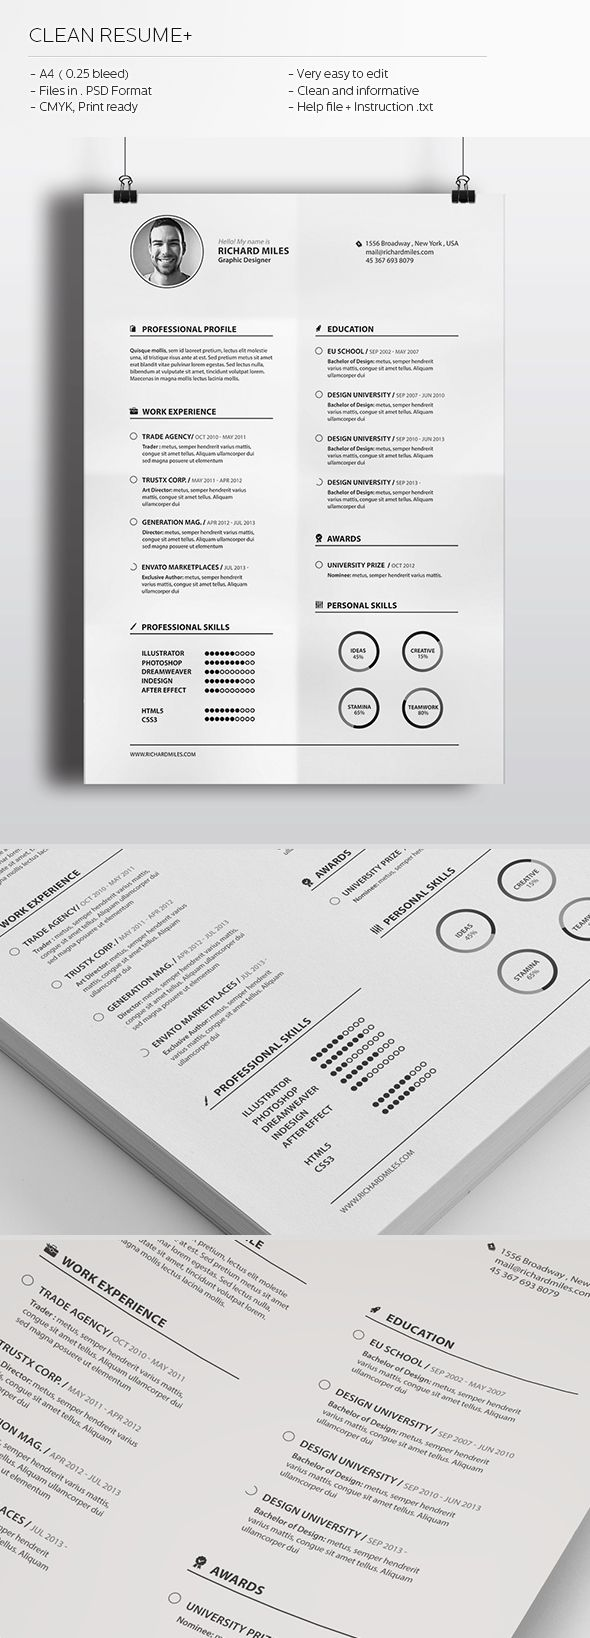 clean resume  by realstar   via behance